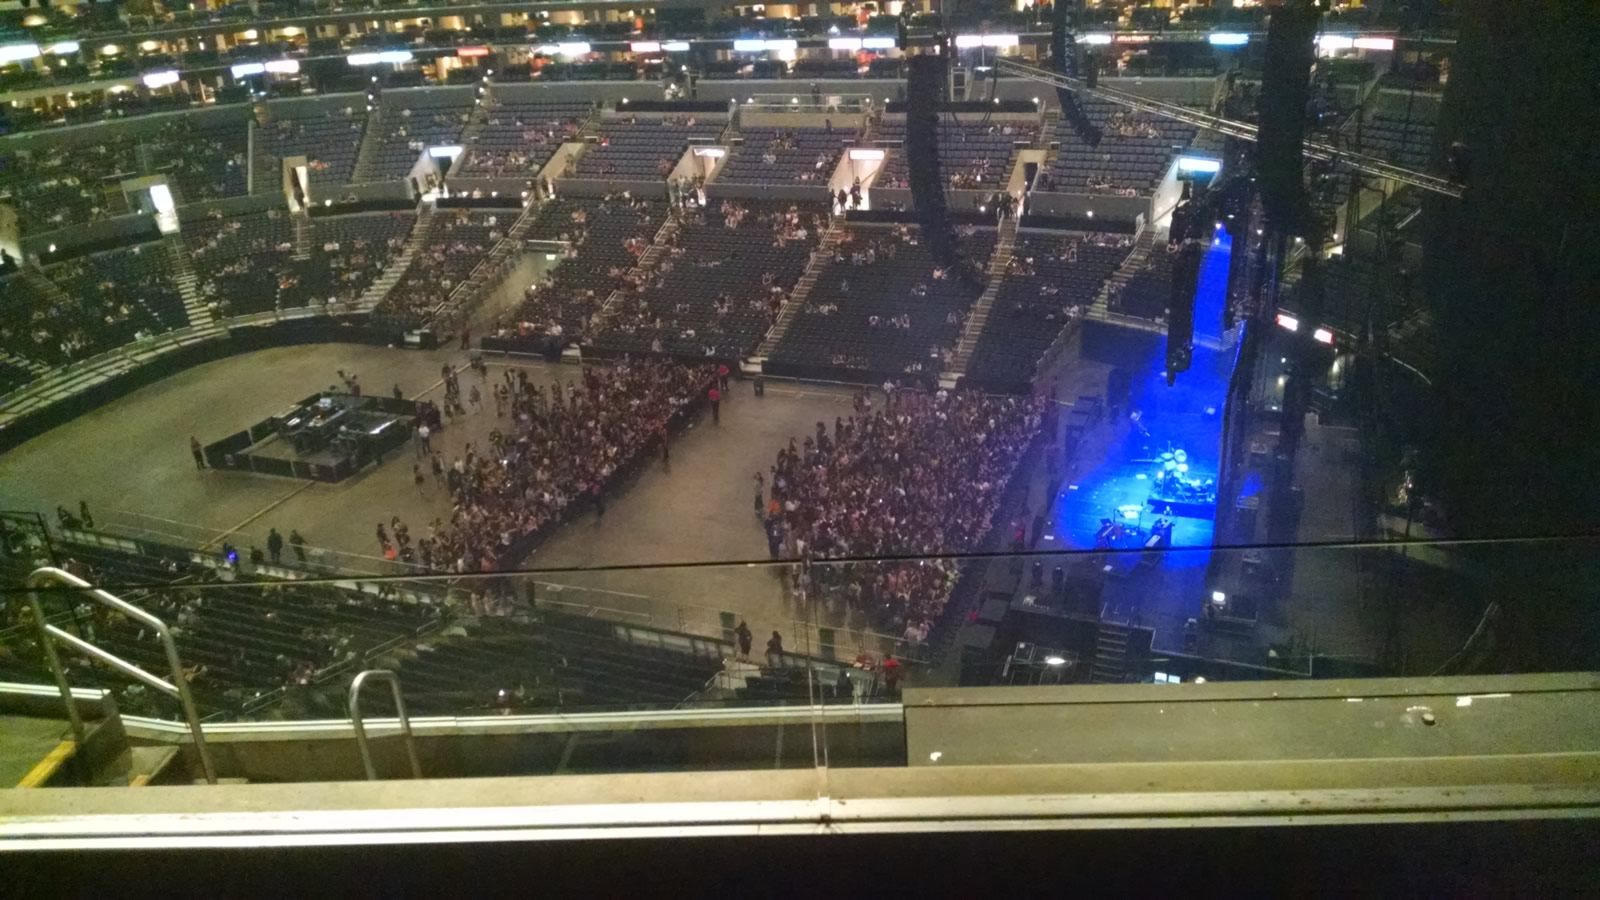 Almost behind the stage curtain Staples Center Section